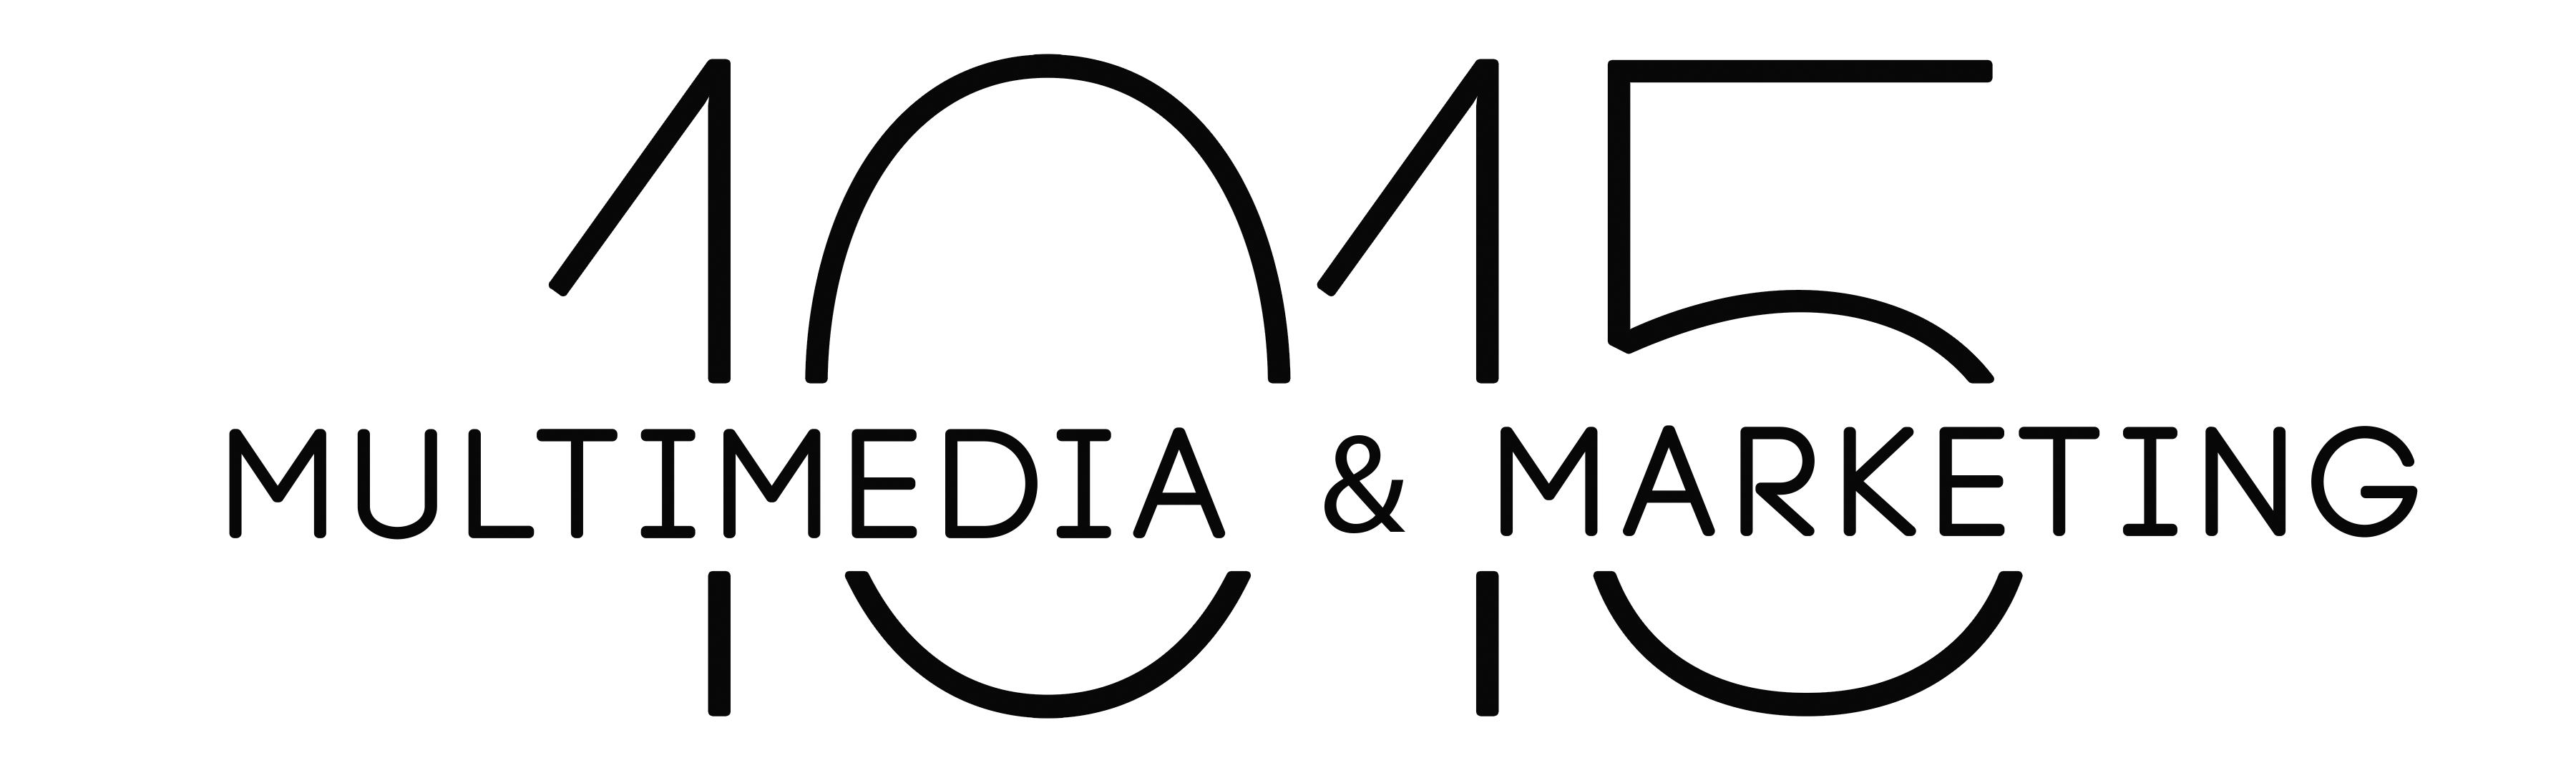 1015 Multimedia & Marketing